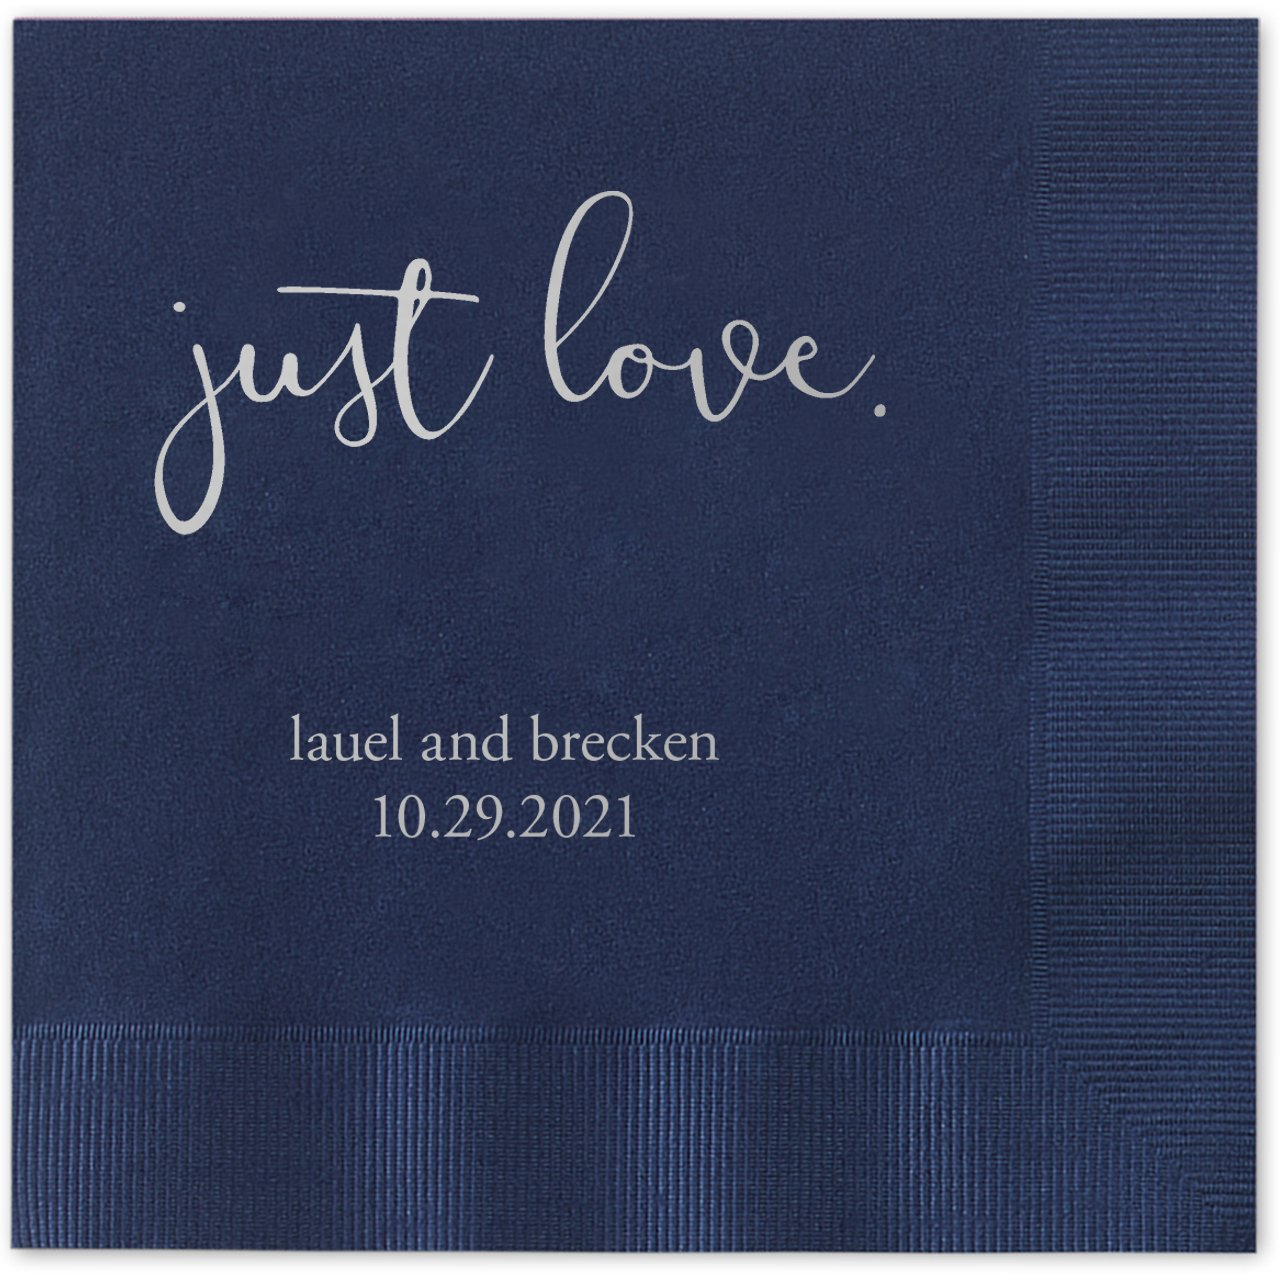 Just Love Personalized Beverage Cocktail Napkins - 100 Custom Printed Navy Blue Paper Napkins with choice of foil by Canopy Street